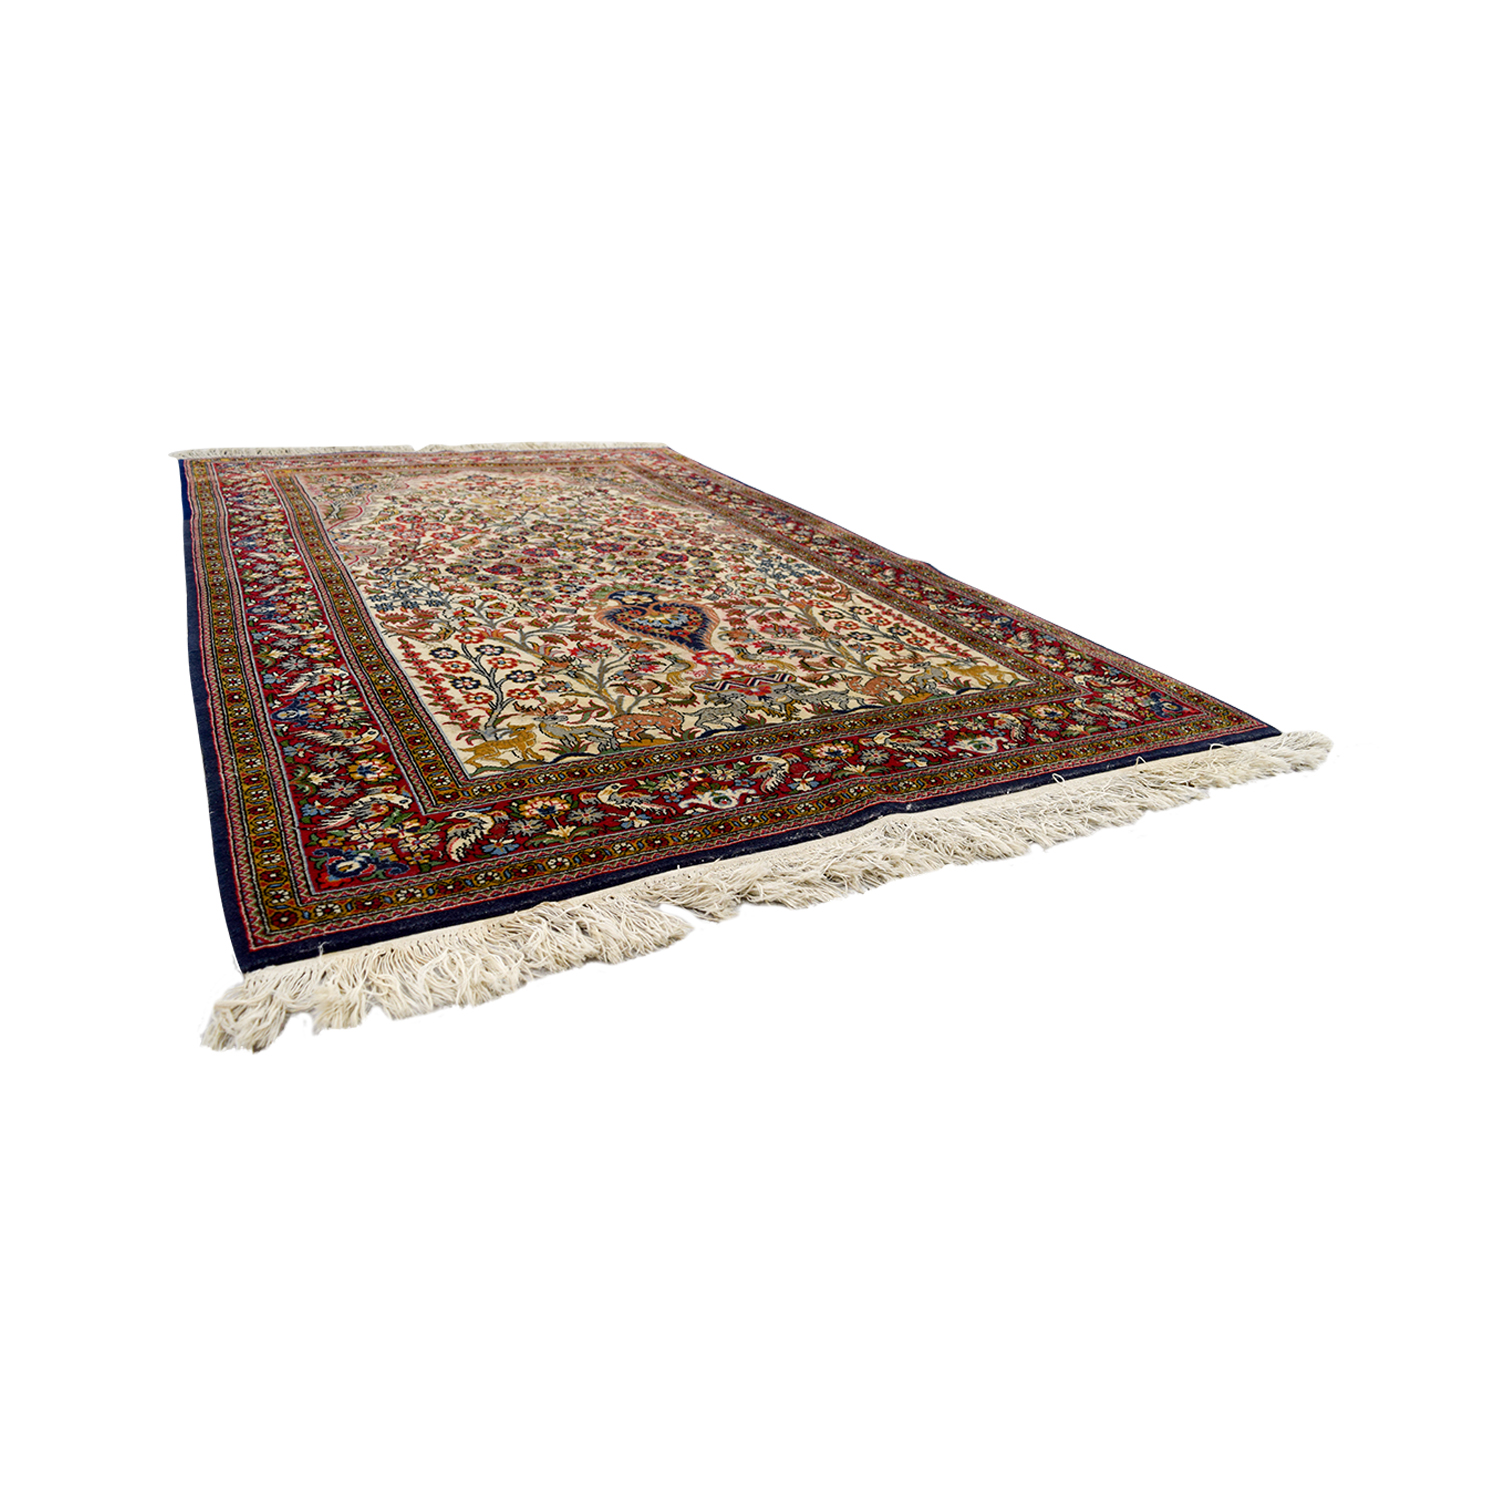 ABC Carpet and Home ABC Carpet & Home Persian Red Rug discount